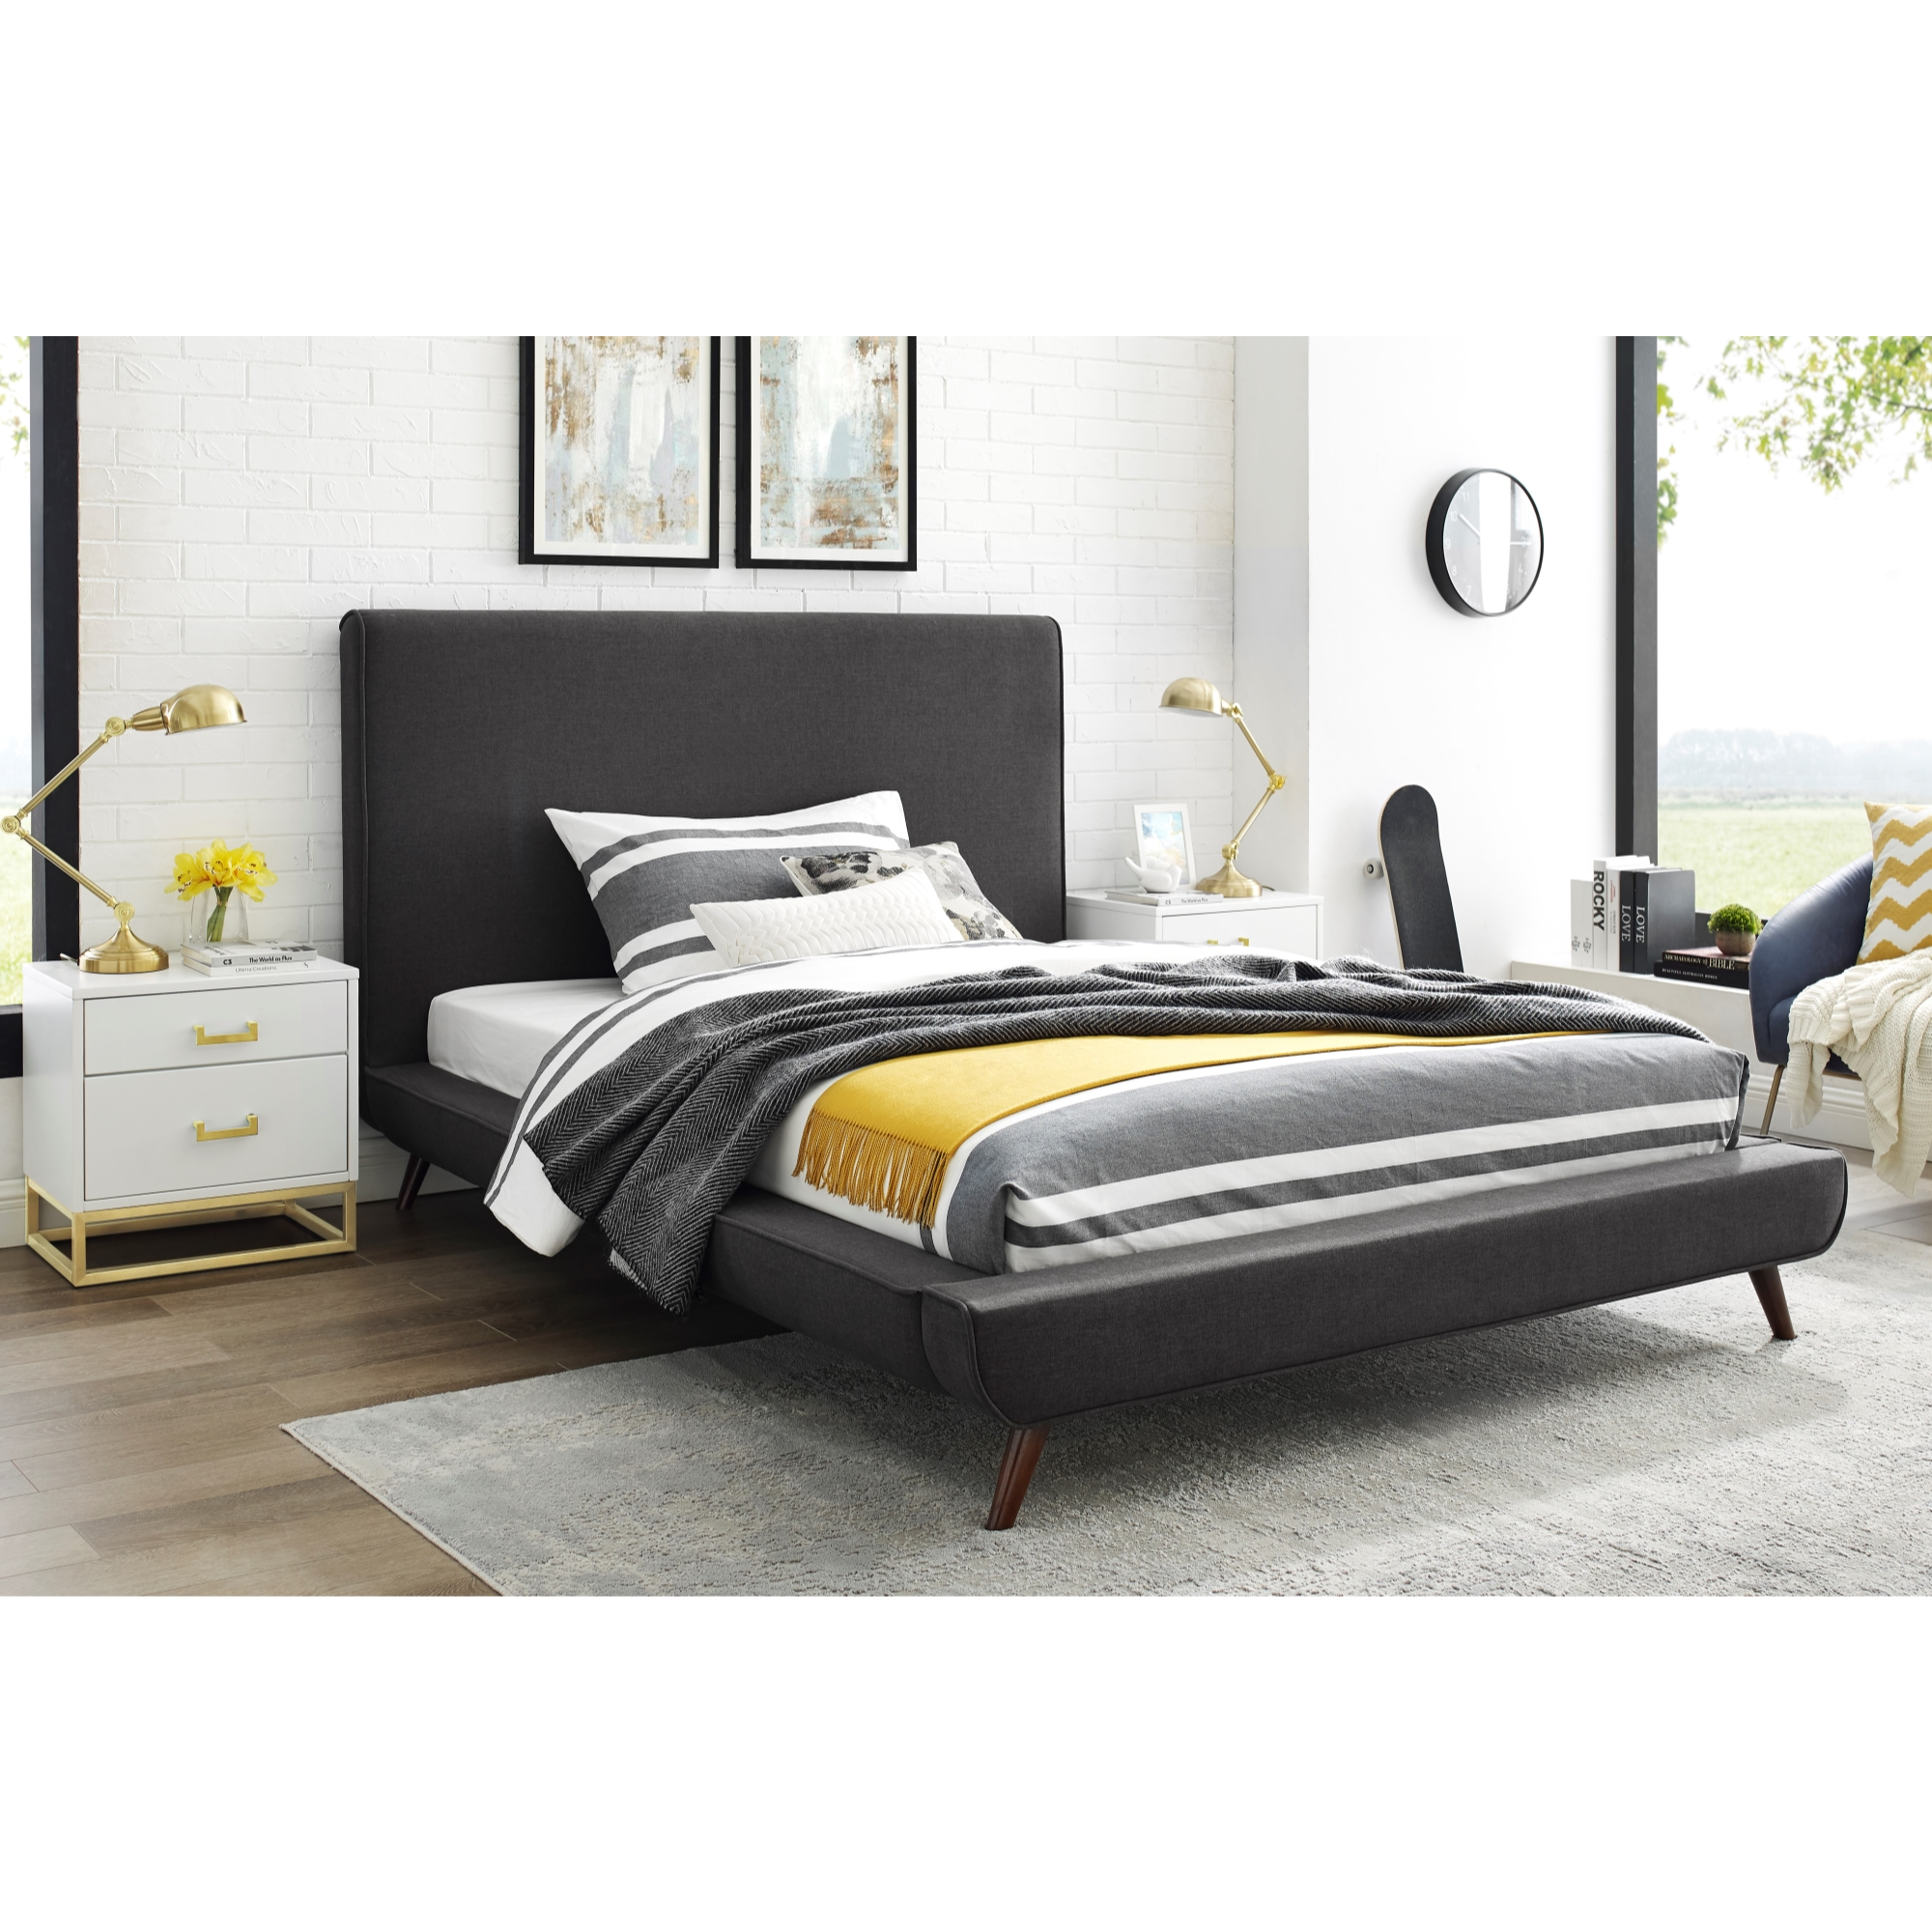 Loft Lyfe Charcoal Linen Bed Upholstered Walnut Tapered Legs